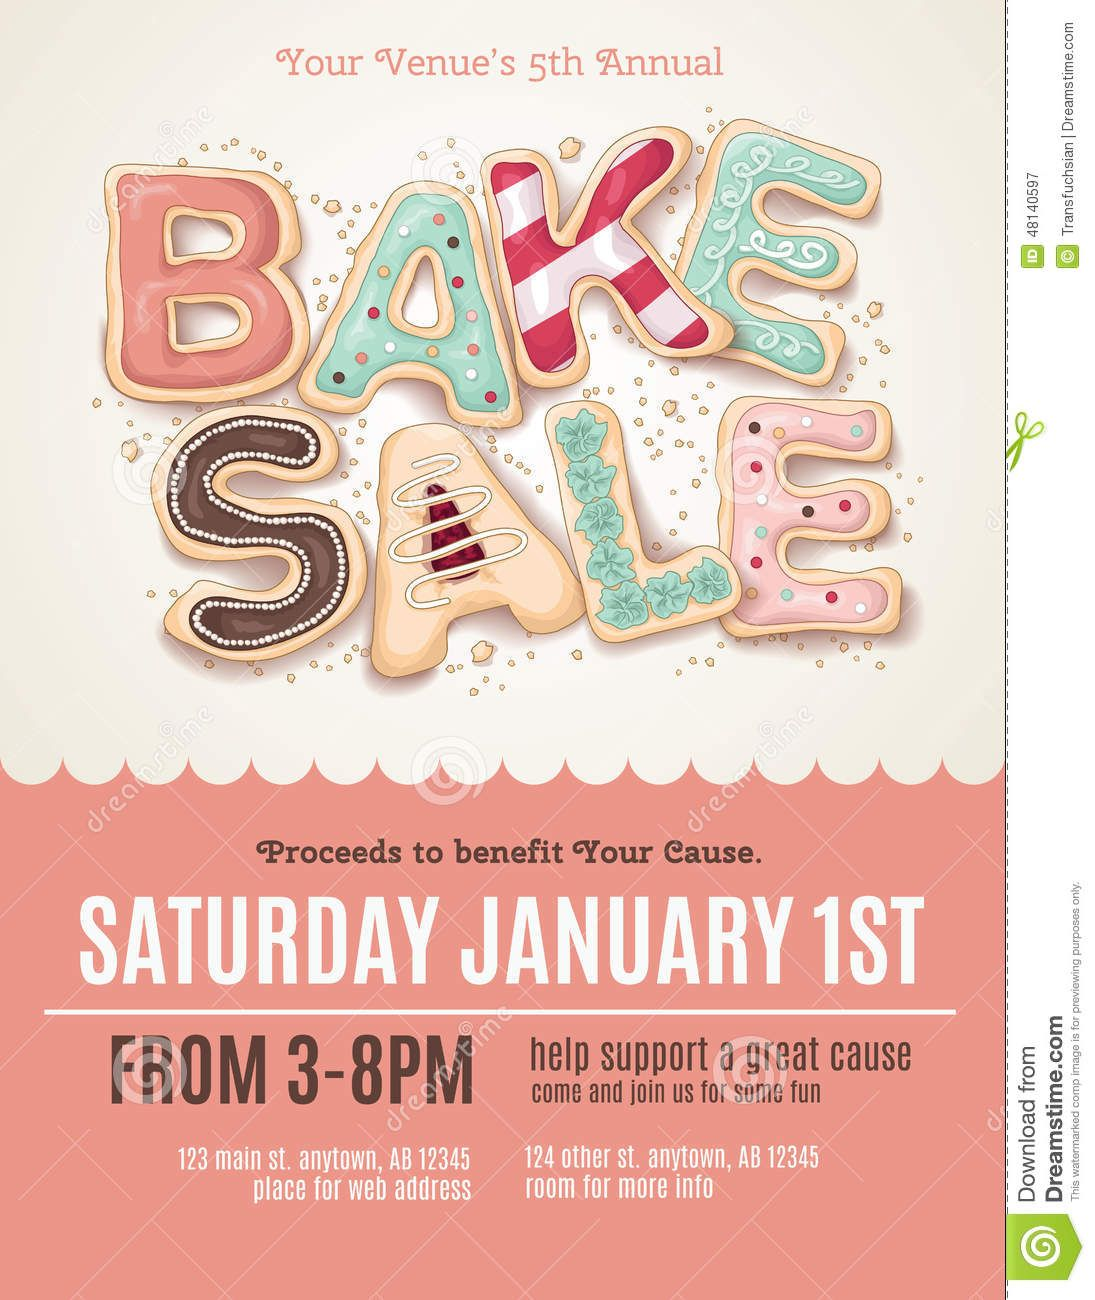 Fun Cookie Bake Sale Flyer Template  Download From Over 56 Million High Quality Stock Photos